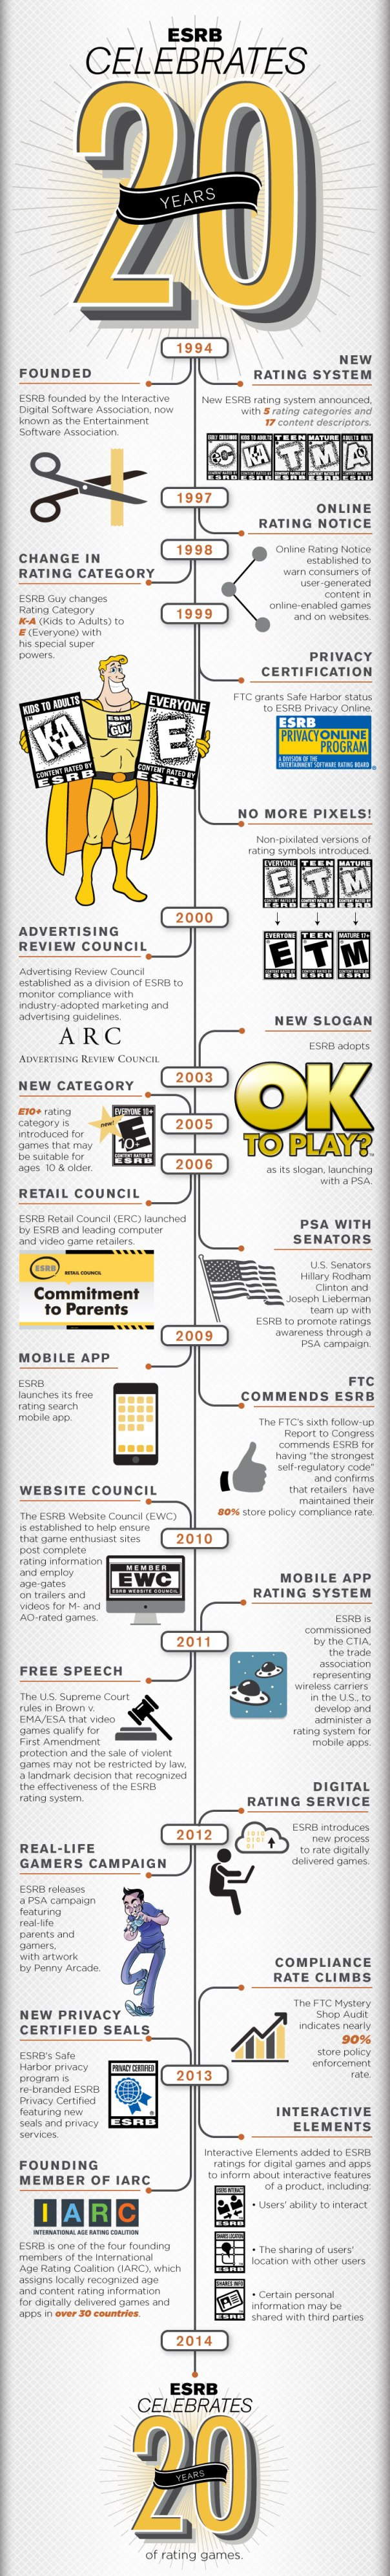 esrb-20-years-infographic